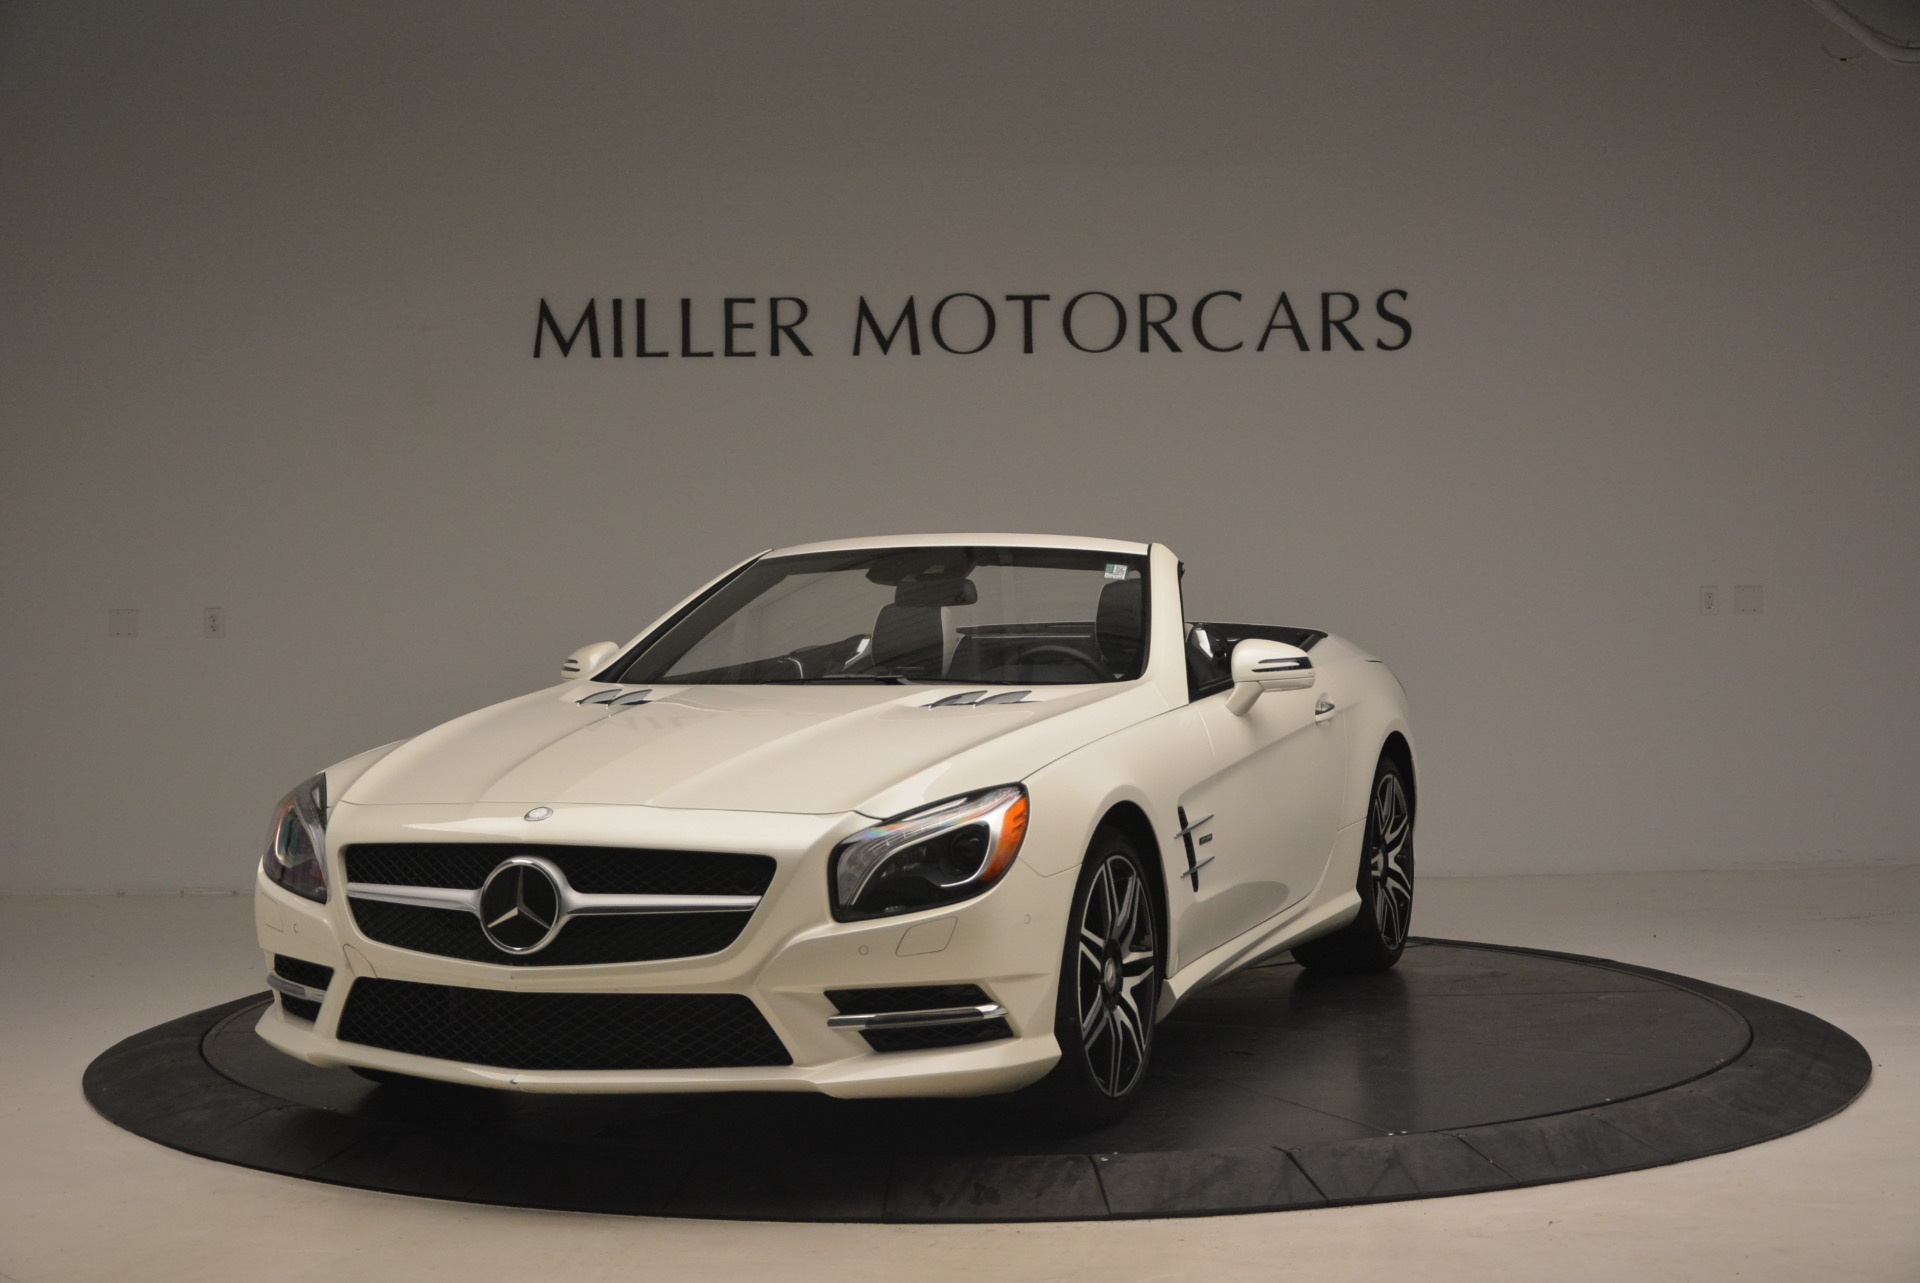 Used 2015 Mercedes Benz SL-Class SL 550 for sale Sold at Bentley Greenwich in Greenwich CT 06830 1